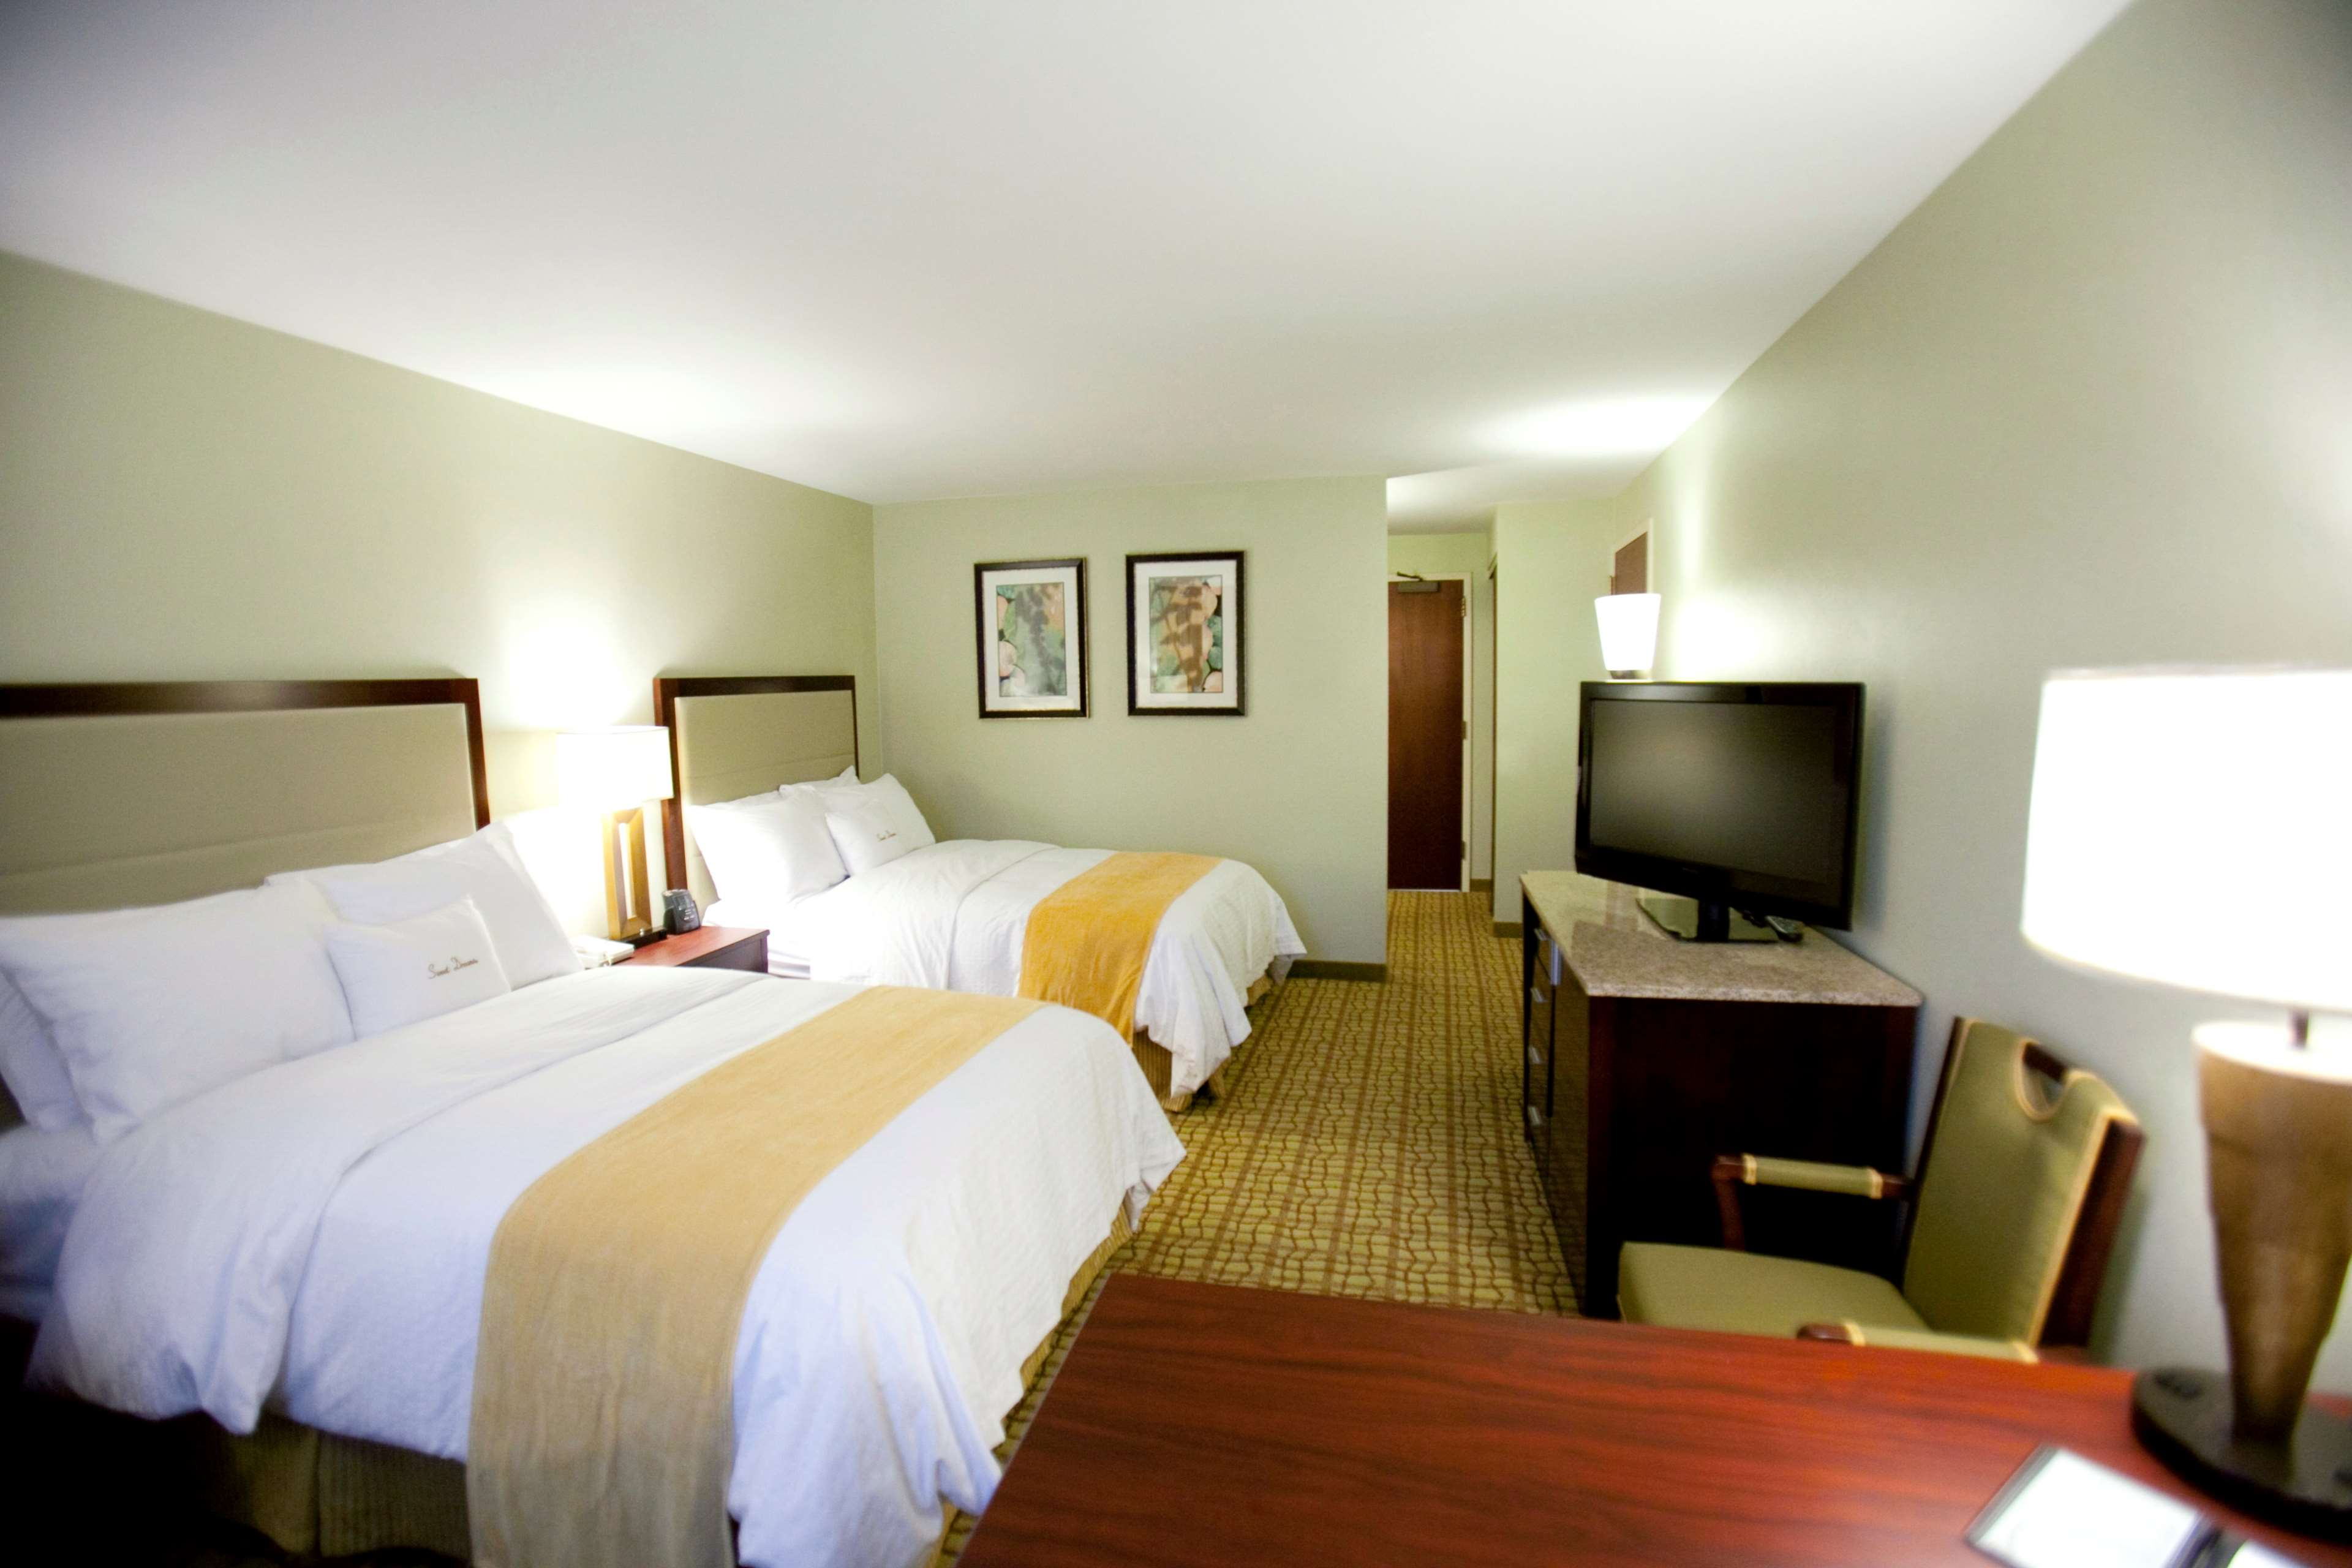 DoubleTree by Hilton Hotel Rochester - Mayo Clinic Area image 32